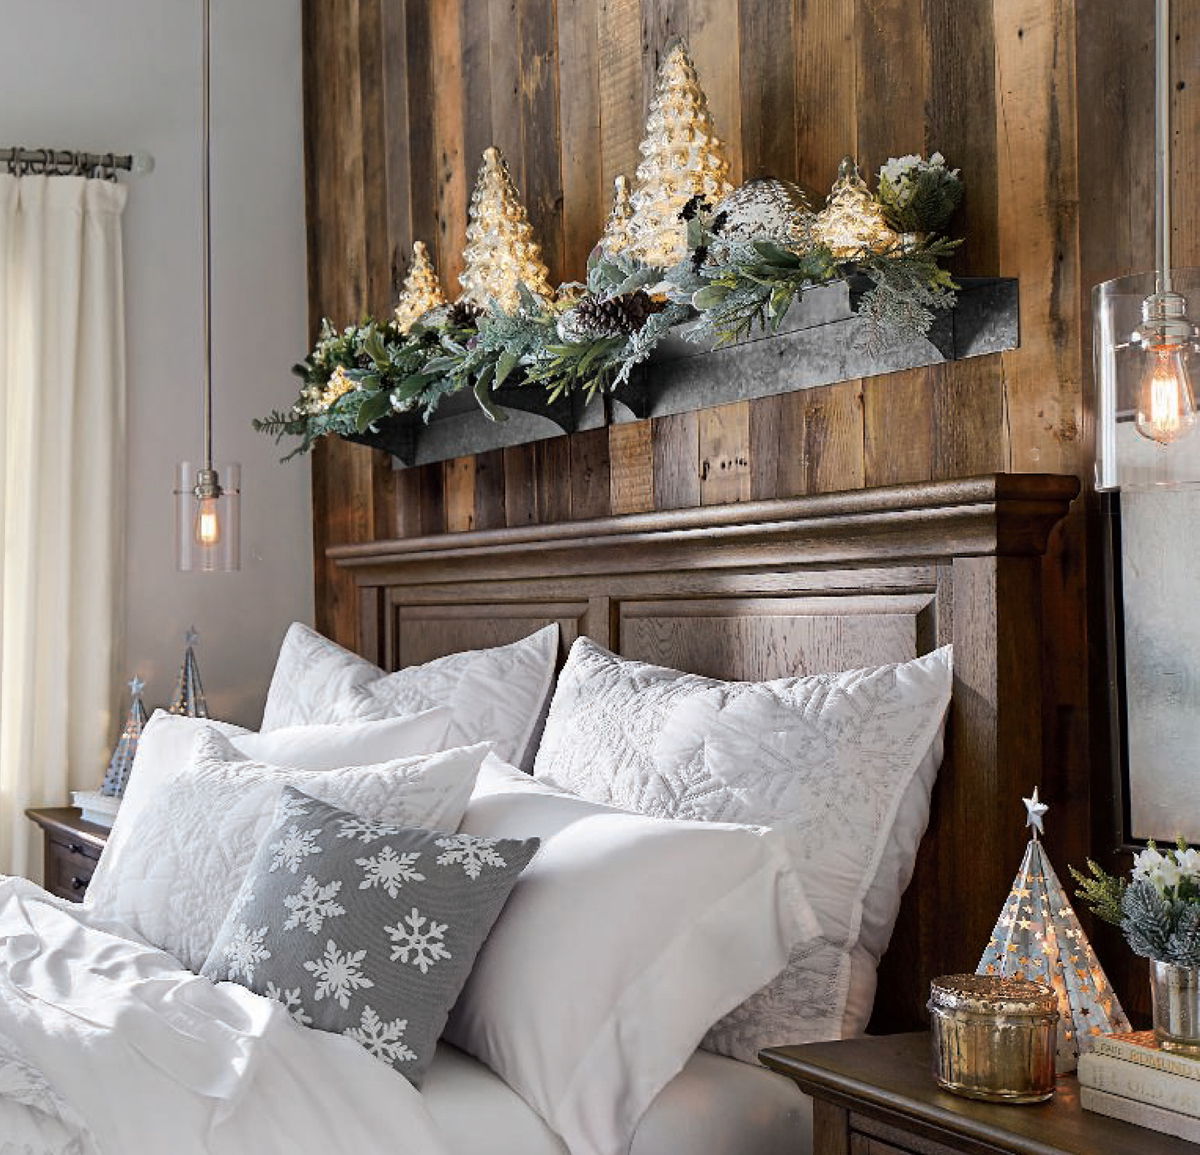 Christmas Decorations Holiday Decorations Decor: Rustic Christmas Decorating Ideas